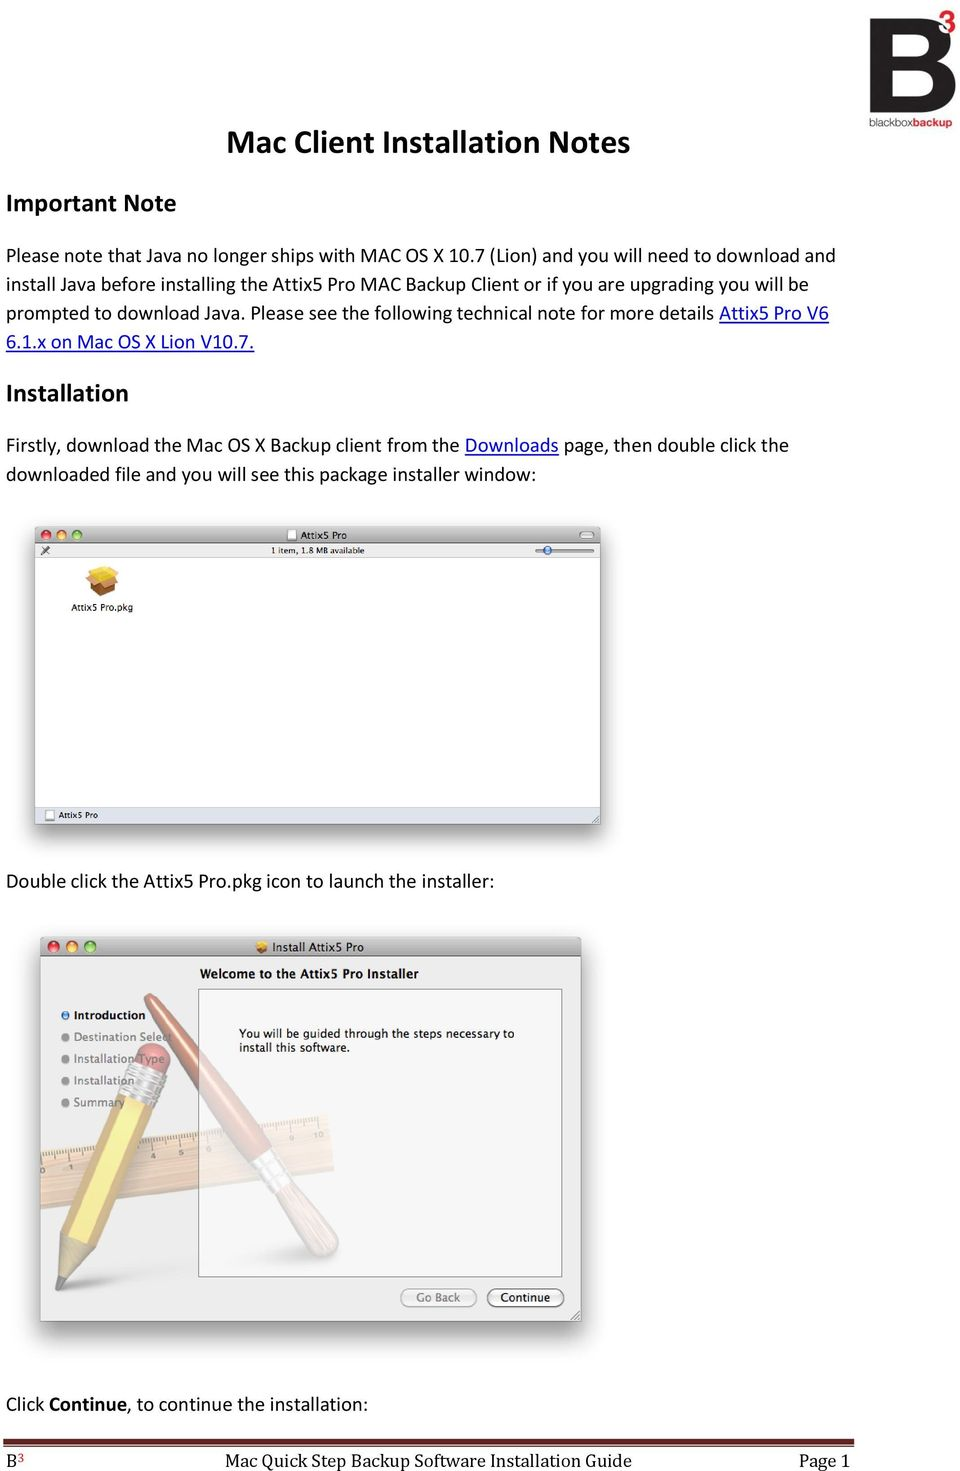 Please see the following technical note for more details Attix5 Pro V6 6.1.x on Mac OS X Lion V10.7.